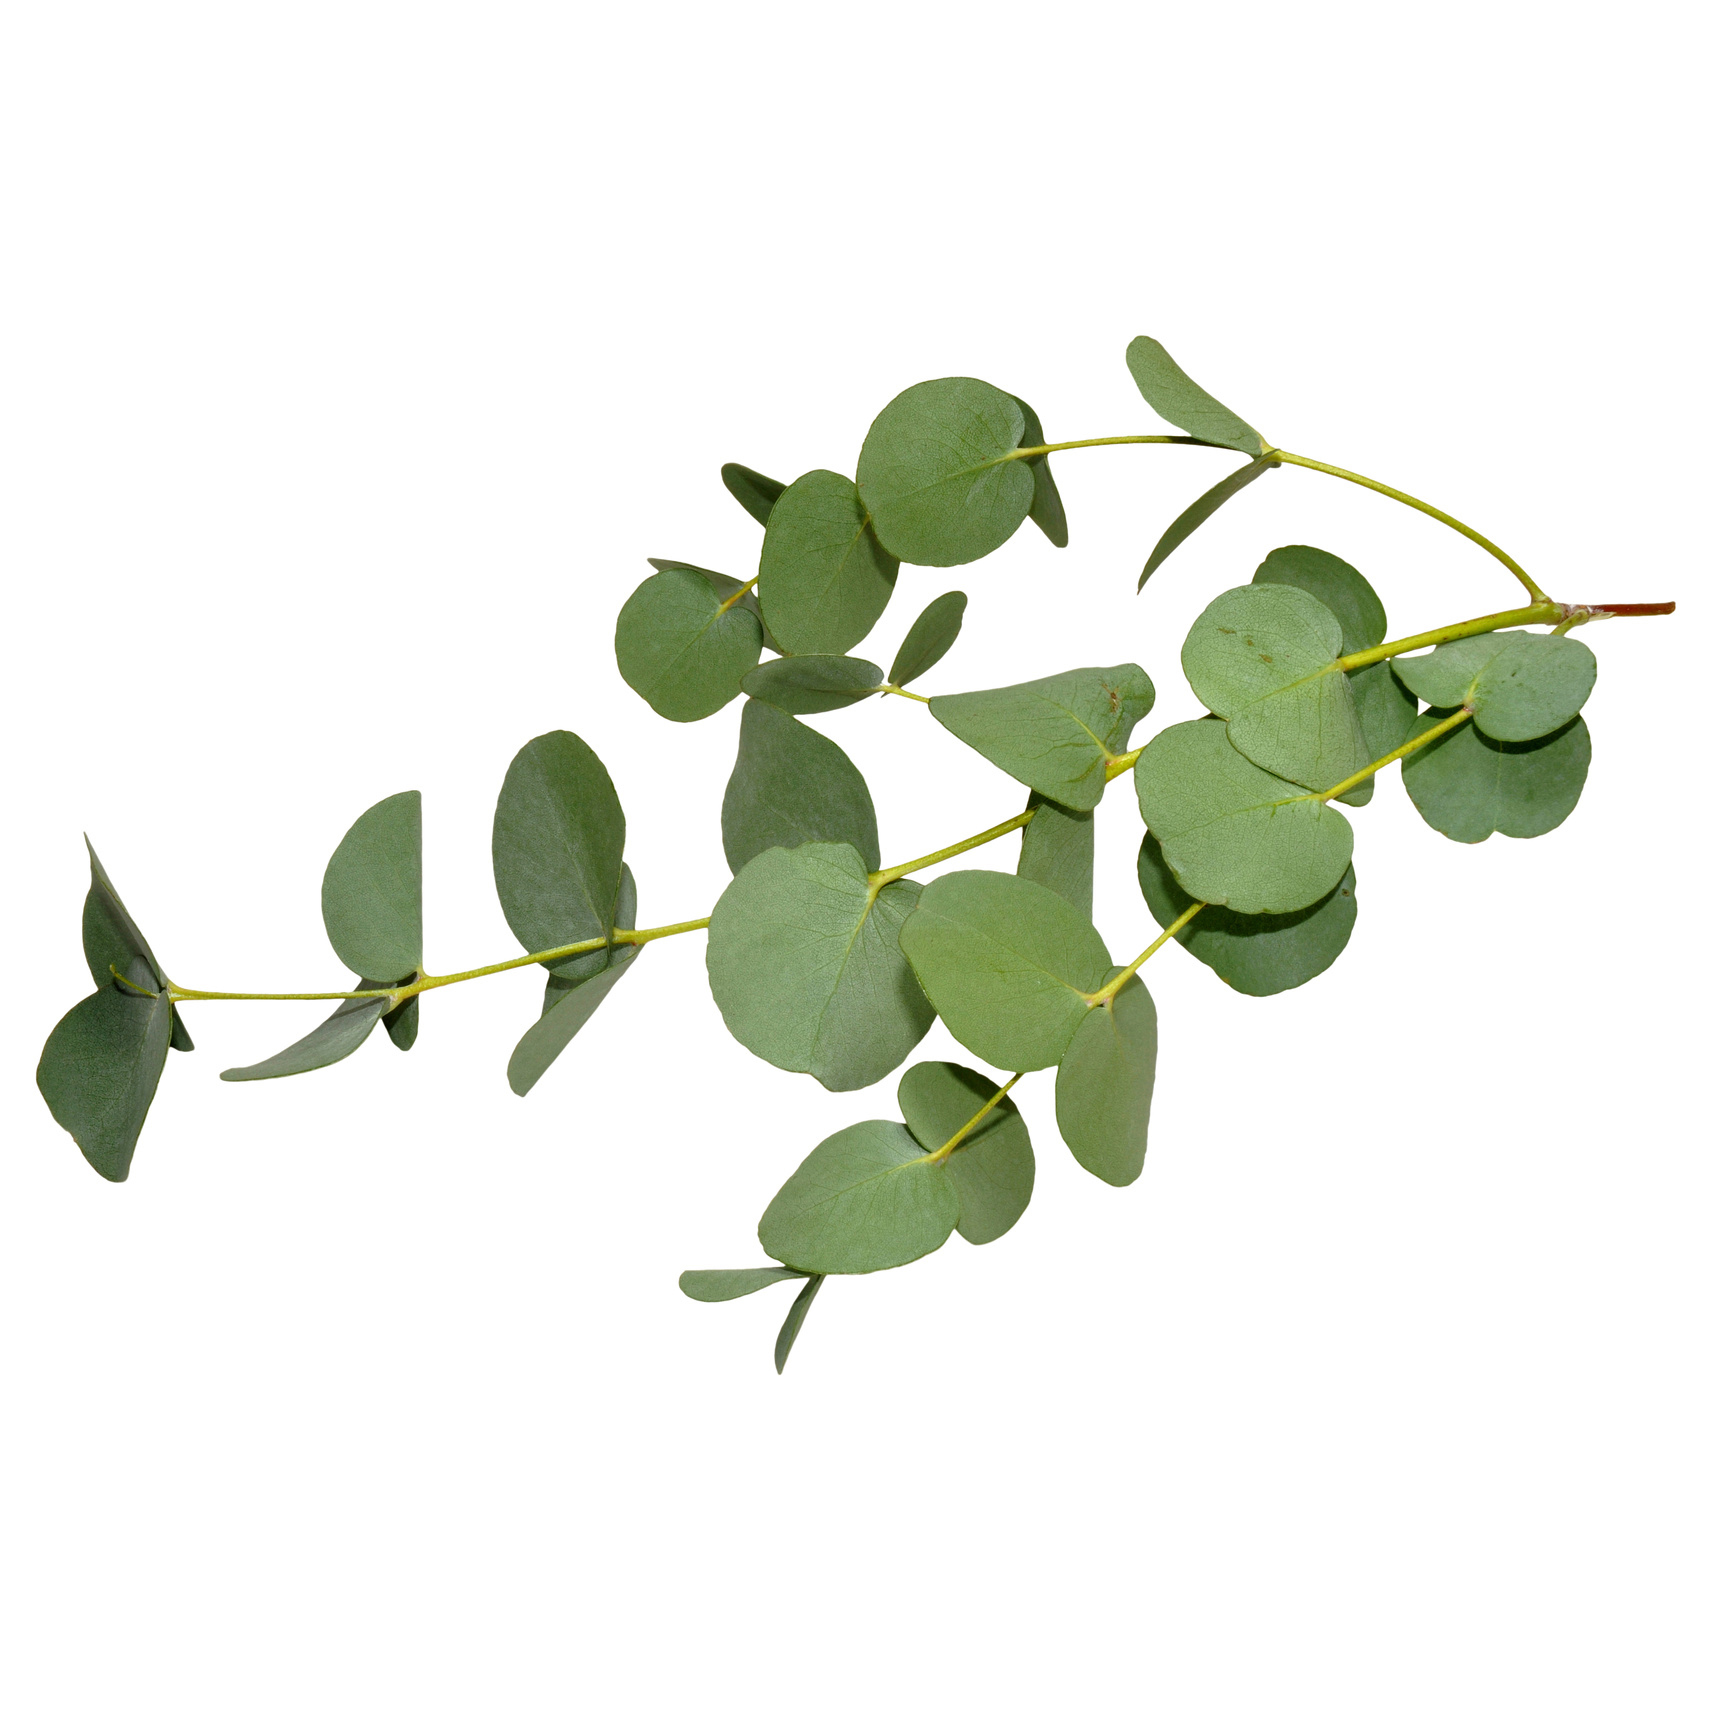 Eucalyptus, an invasive species to CA, is native to Australia. Not a good source of lumber, they are beautiful, some species being delightfully aromatic. The leaves impart a fresh, minty character.